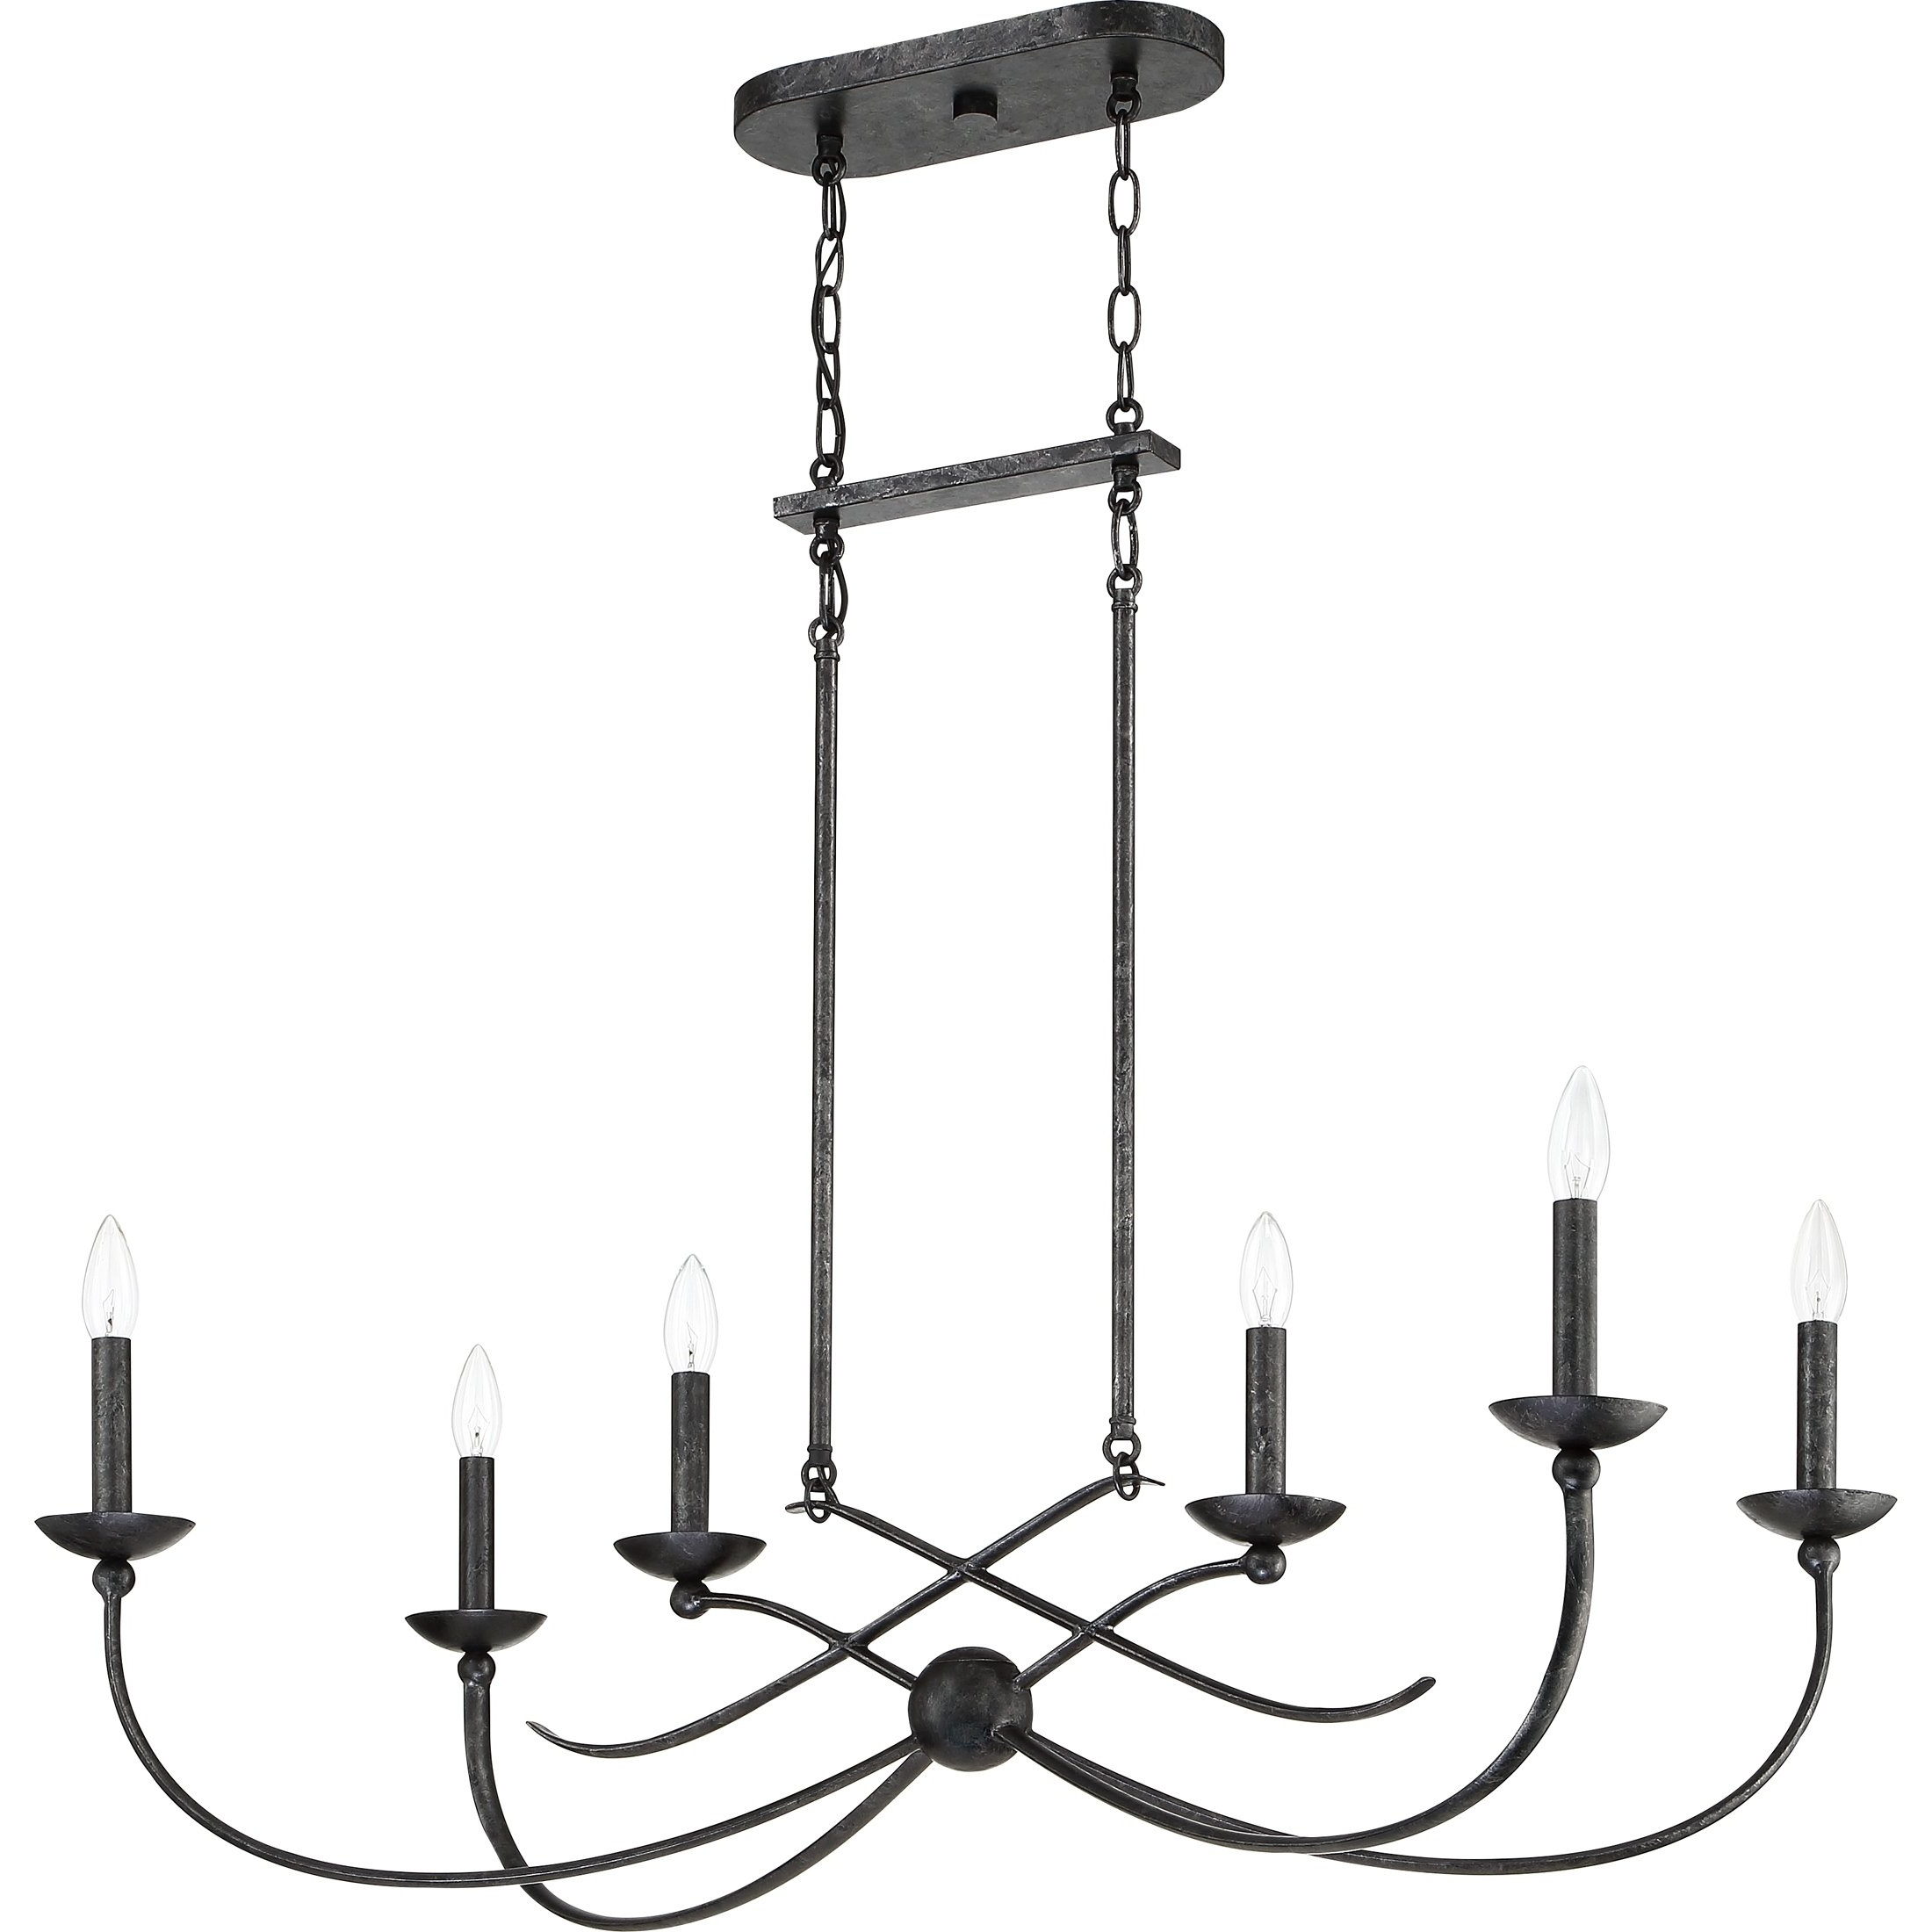 Favorite Quoizel Calligraphy Old Black 6 Light Island Chandelier In With Regard To Hamza 6 Light Candle Style Chandeliers (View 6 of 20)